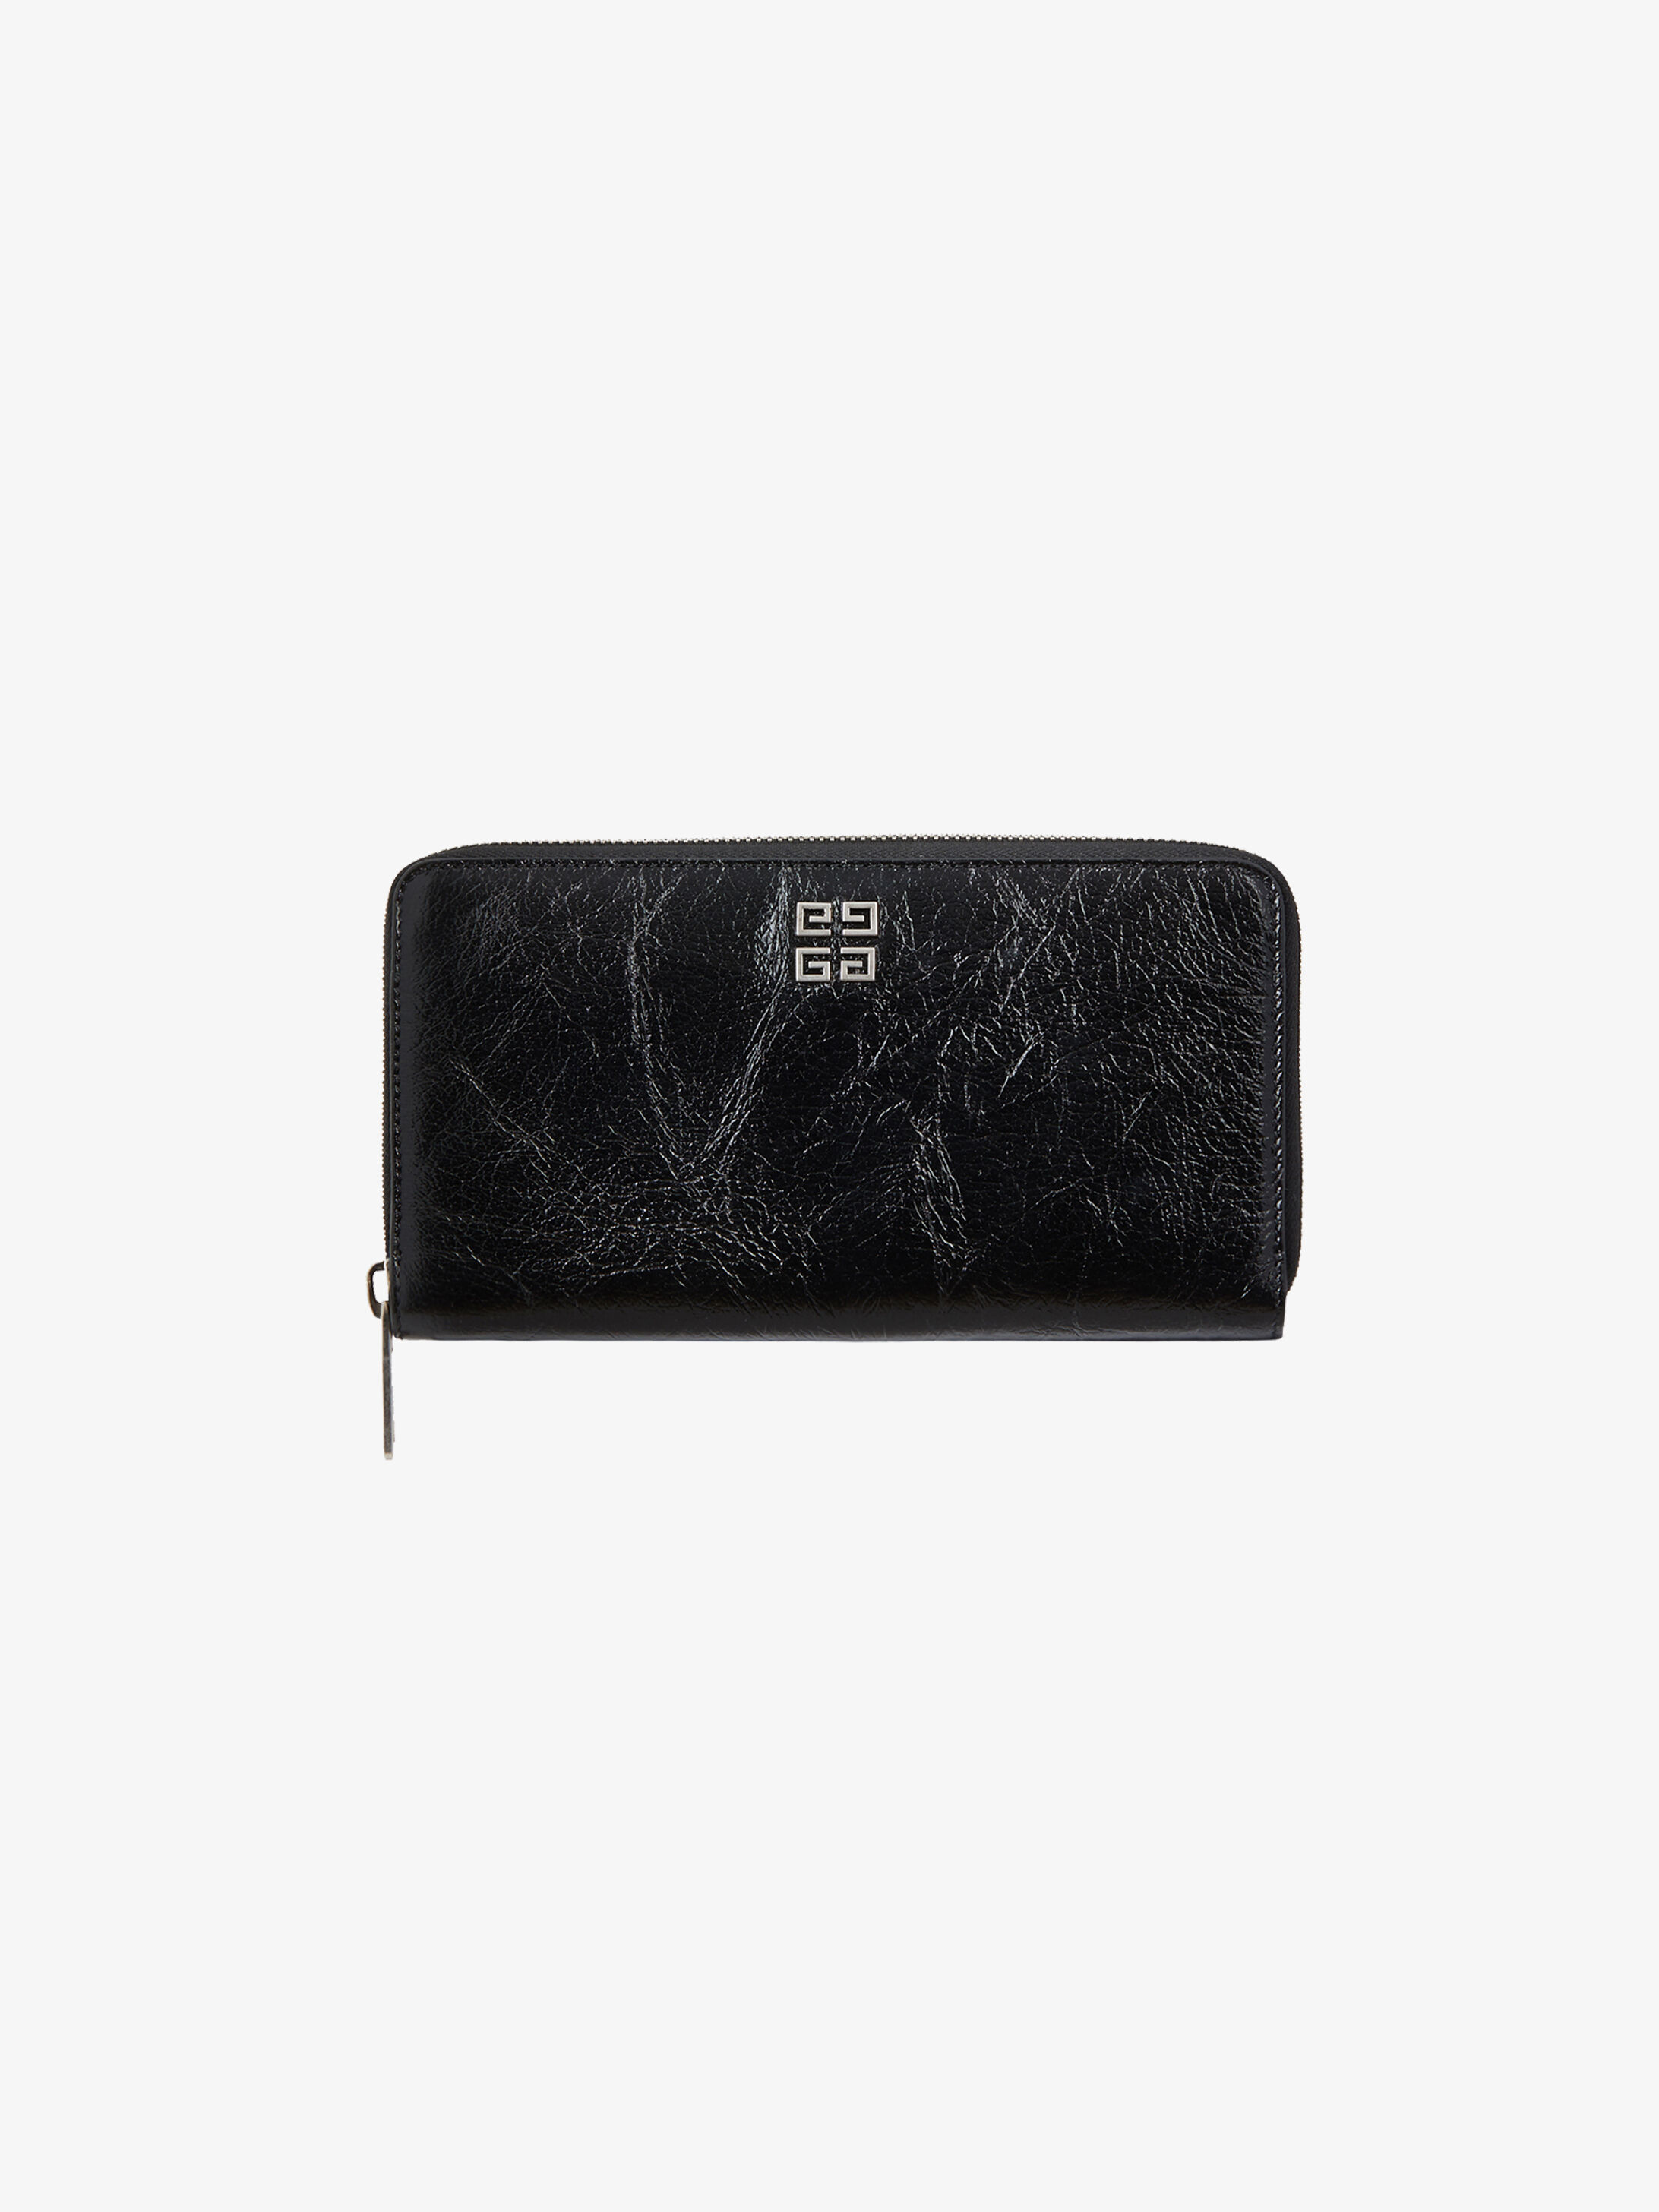 Men s Wallets collection by Givenchy.  ed35a3010